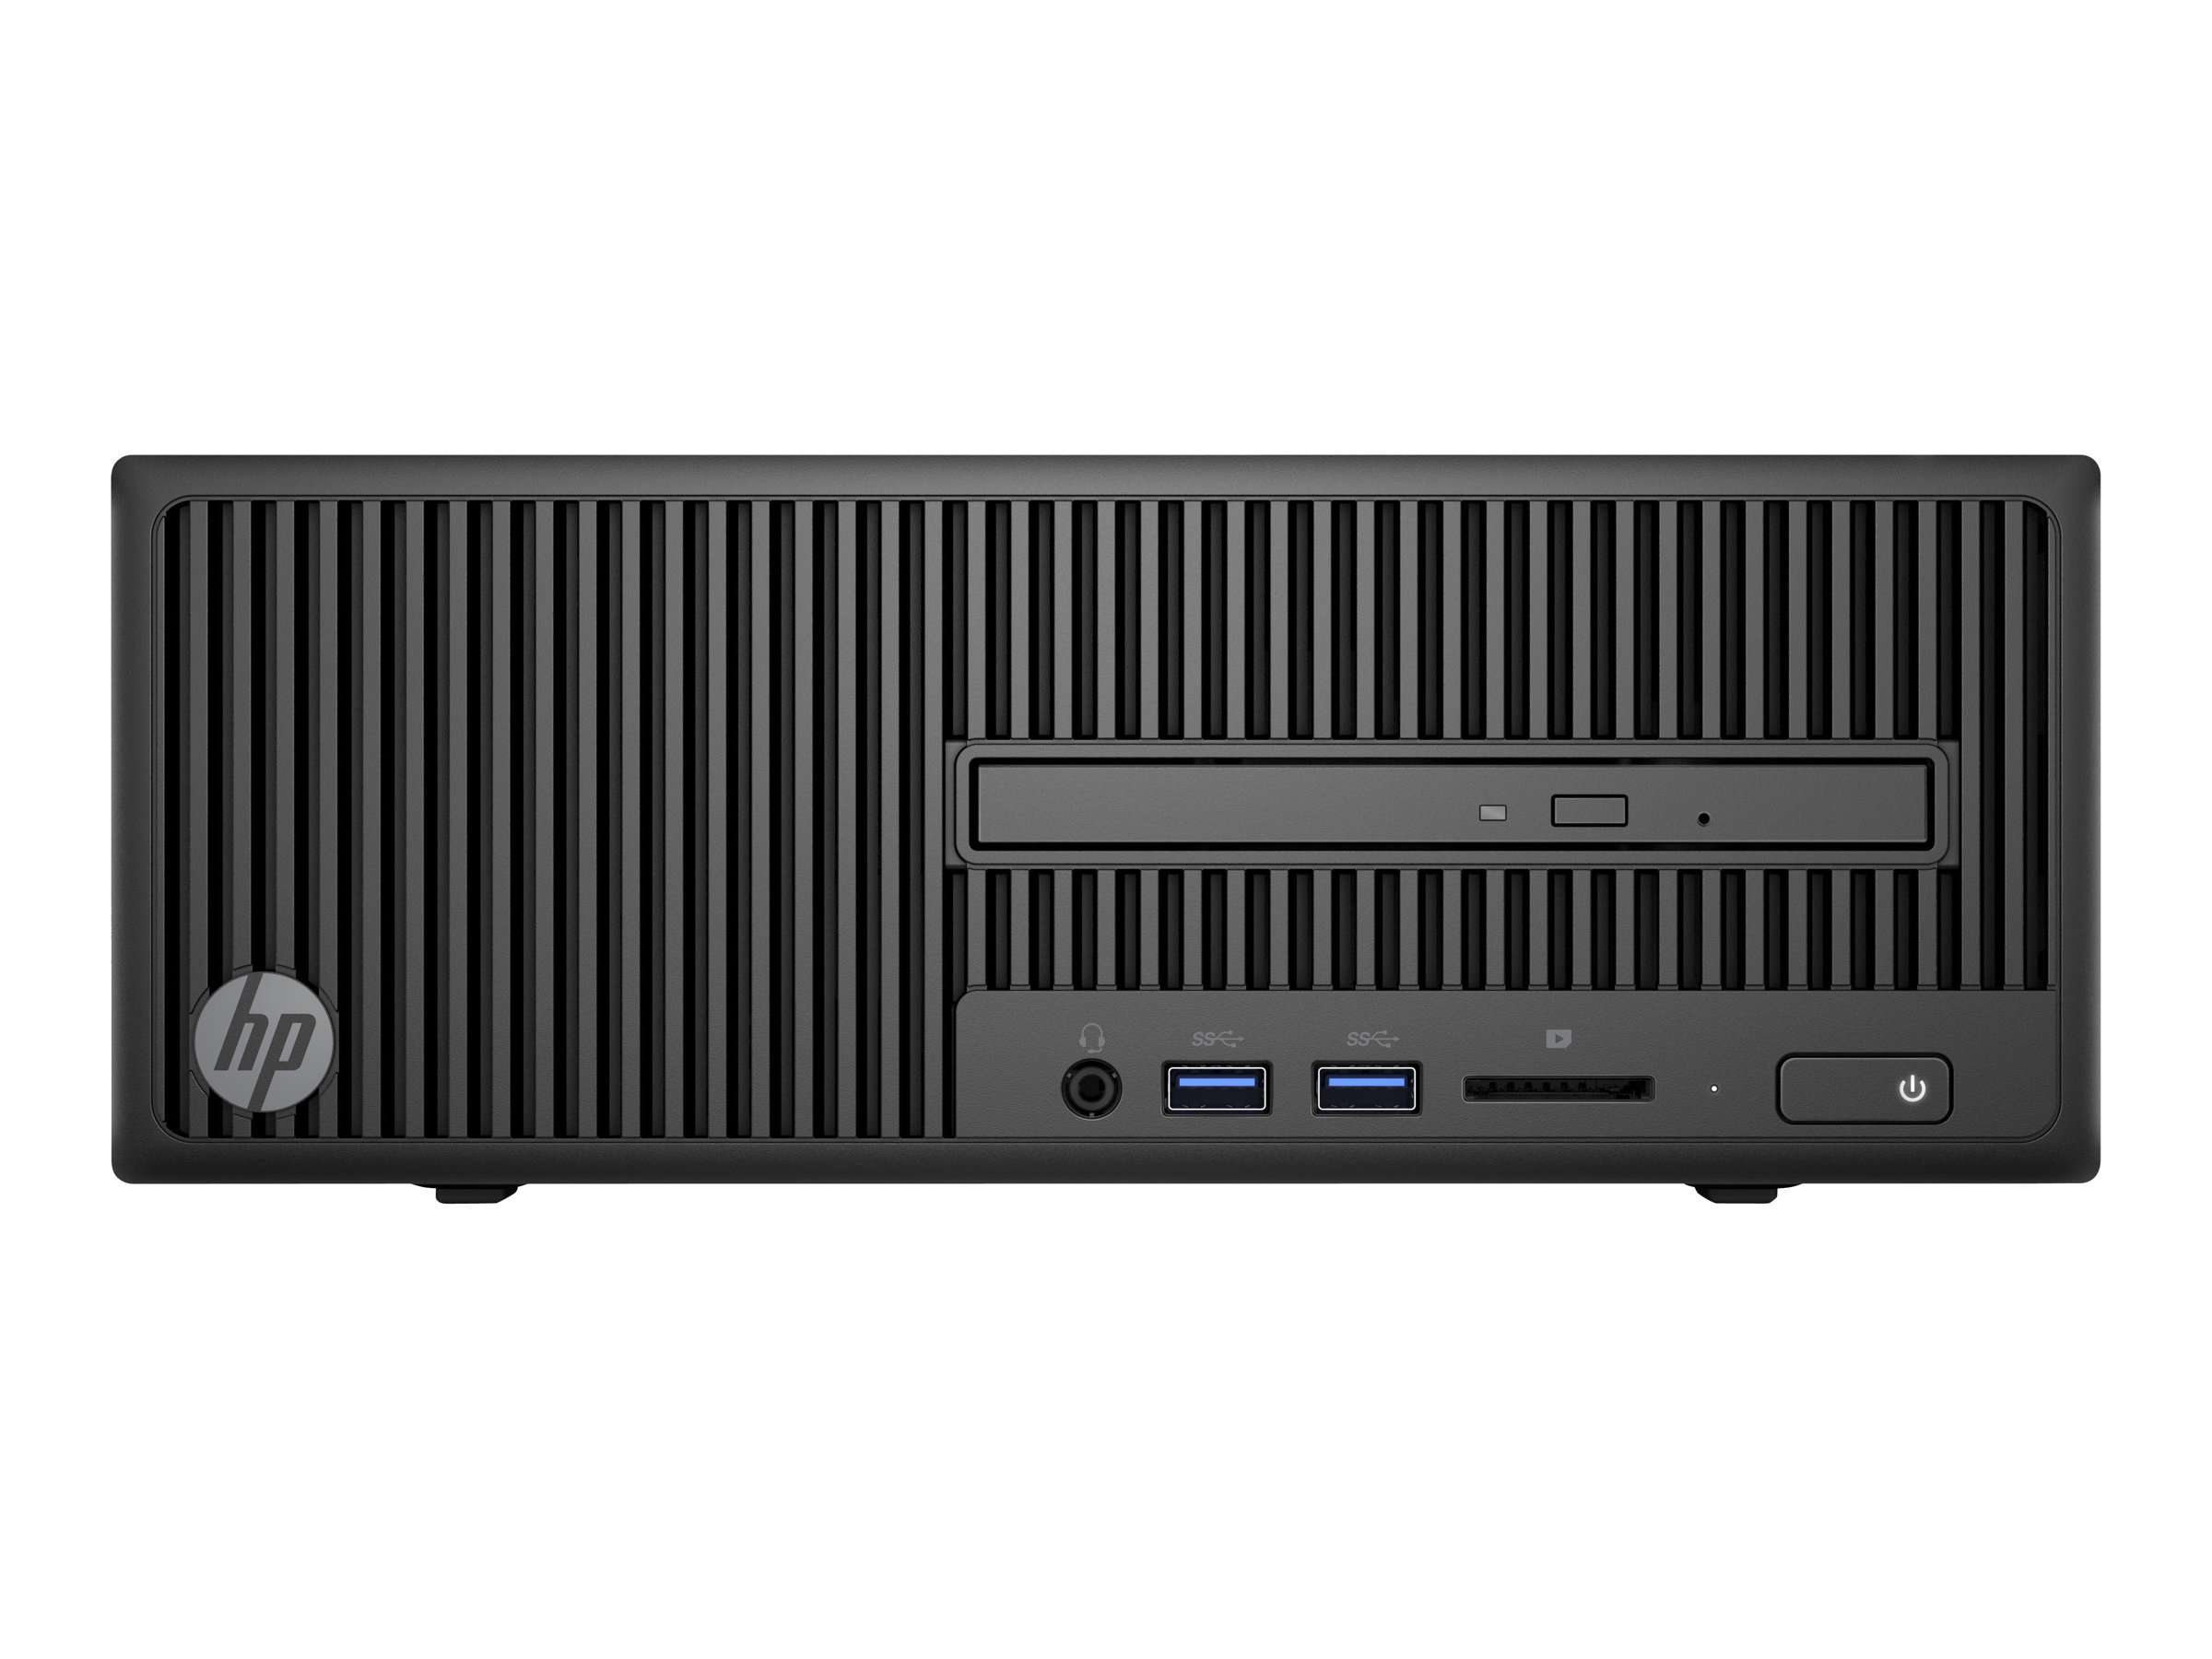 HP 280 G2 - SFF - 1 x Core i3 6100 / 3.7 GHz - RAM 4 GB - HDD 500 GB - DVD SuperMulti